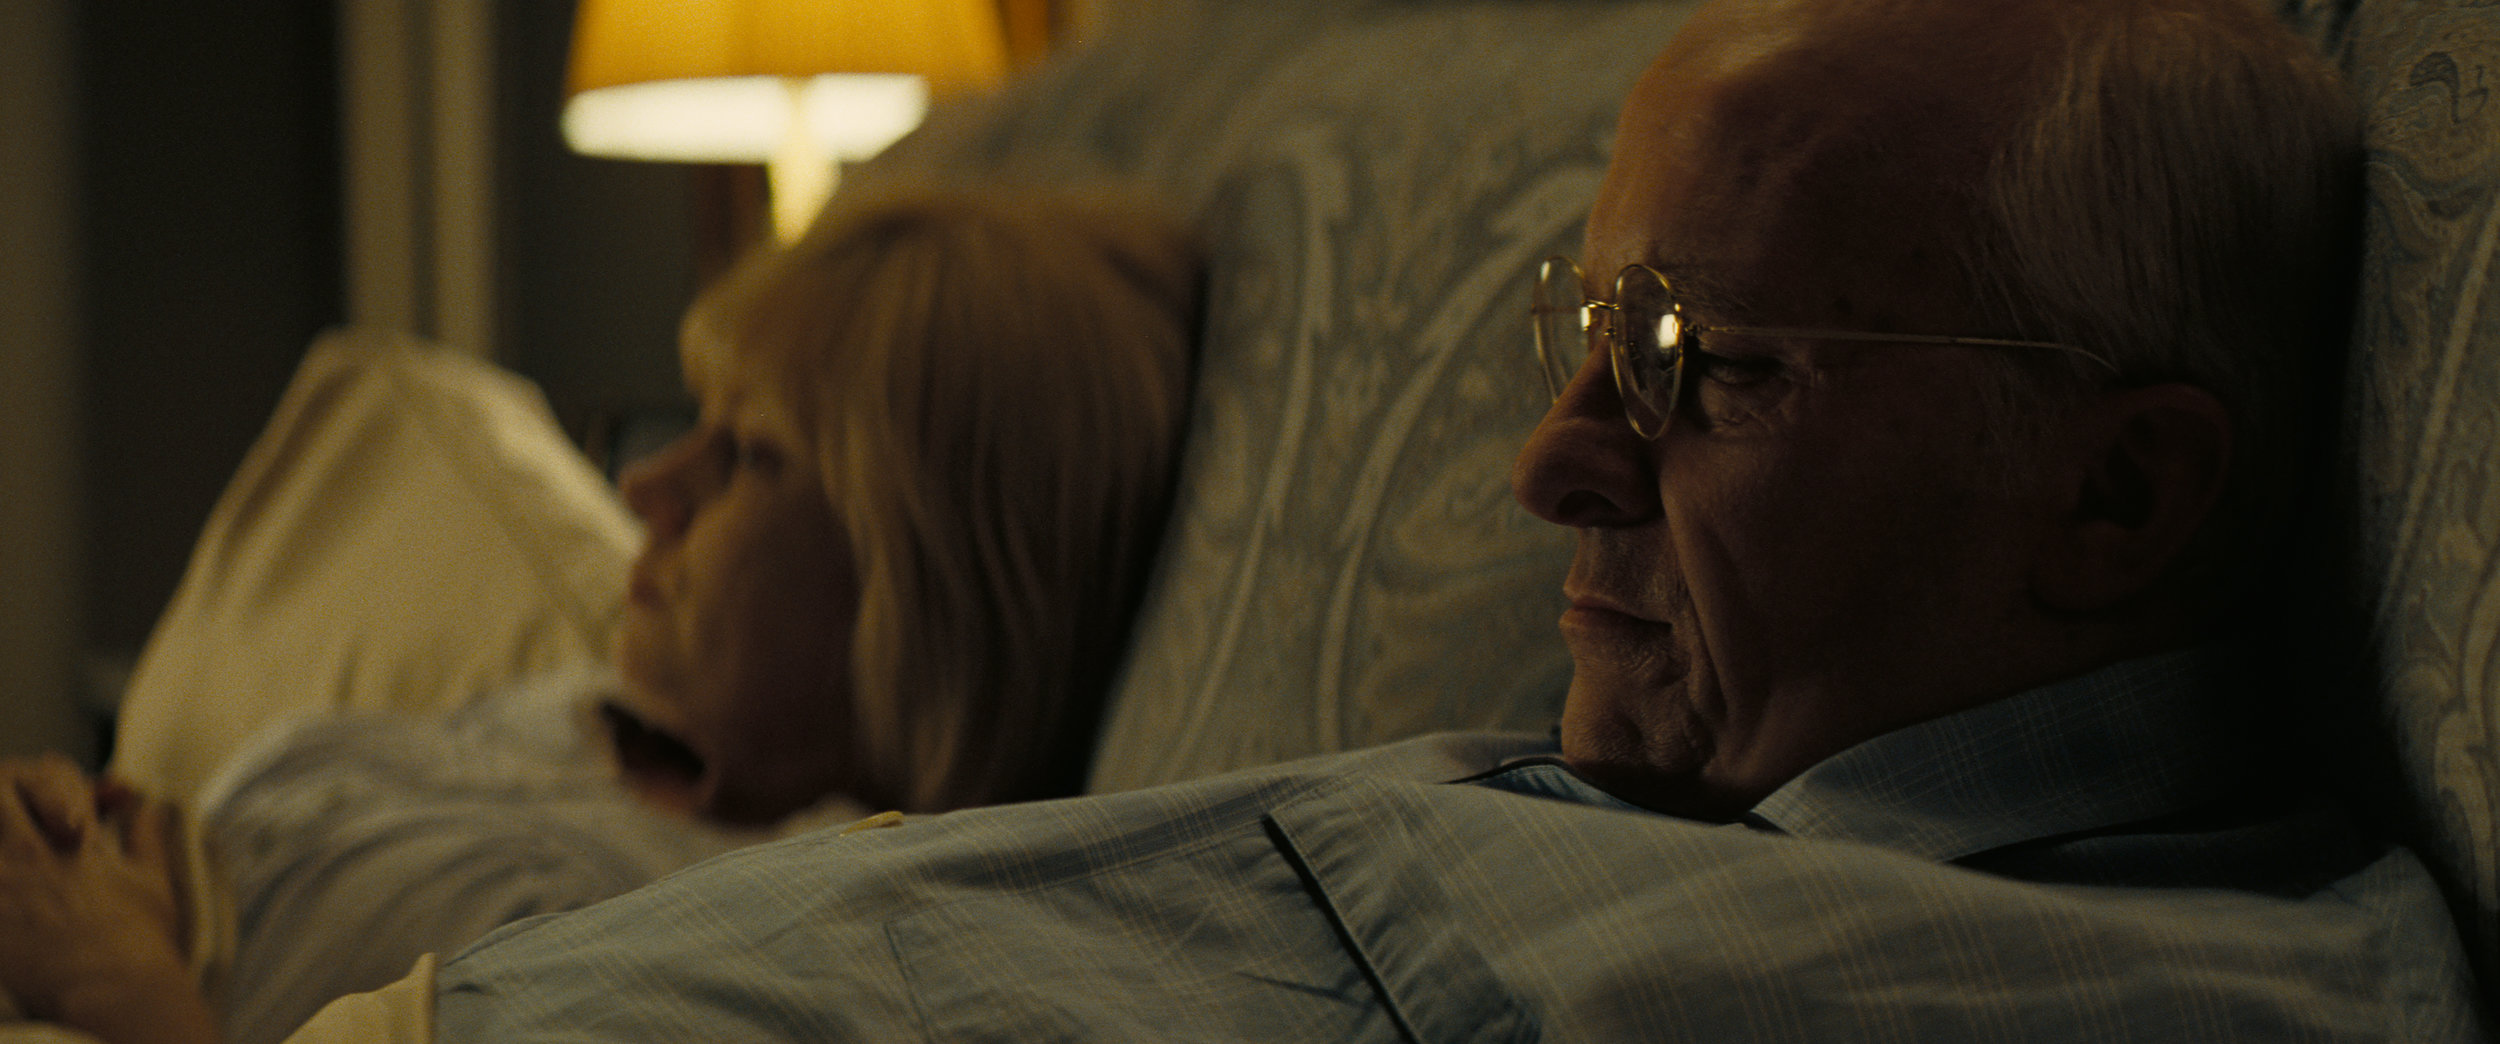 "Dick Cheney (Christian Bale, right) and his wife Lynne (Amy Adams) lie in bed, in a scene from Adam McKay's biographical drama ""Vice."" (Photo courtesy Annapurna Pictures)"